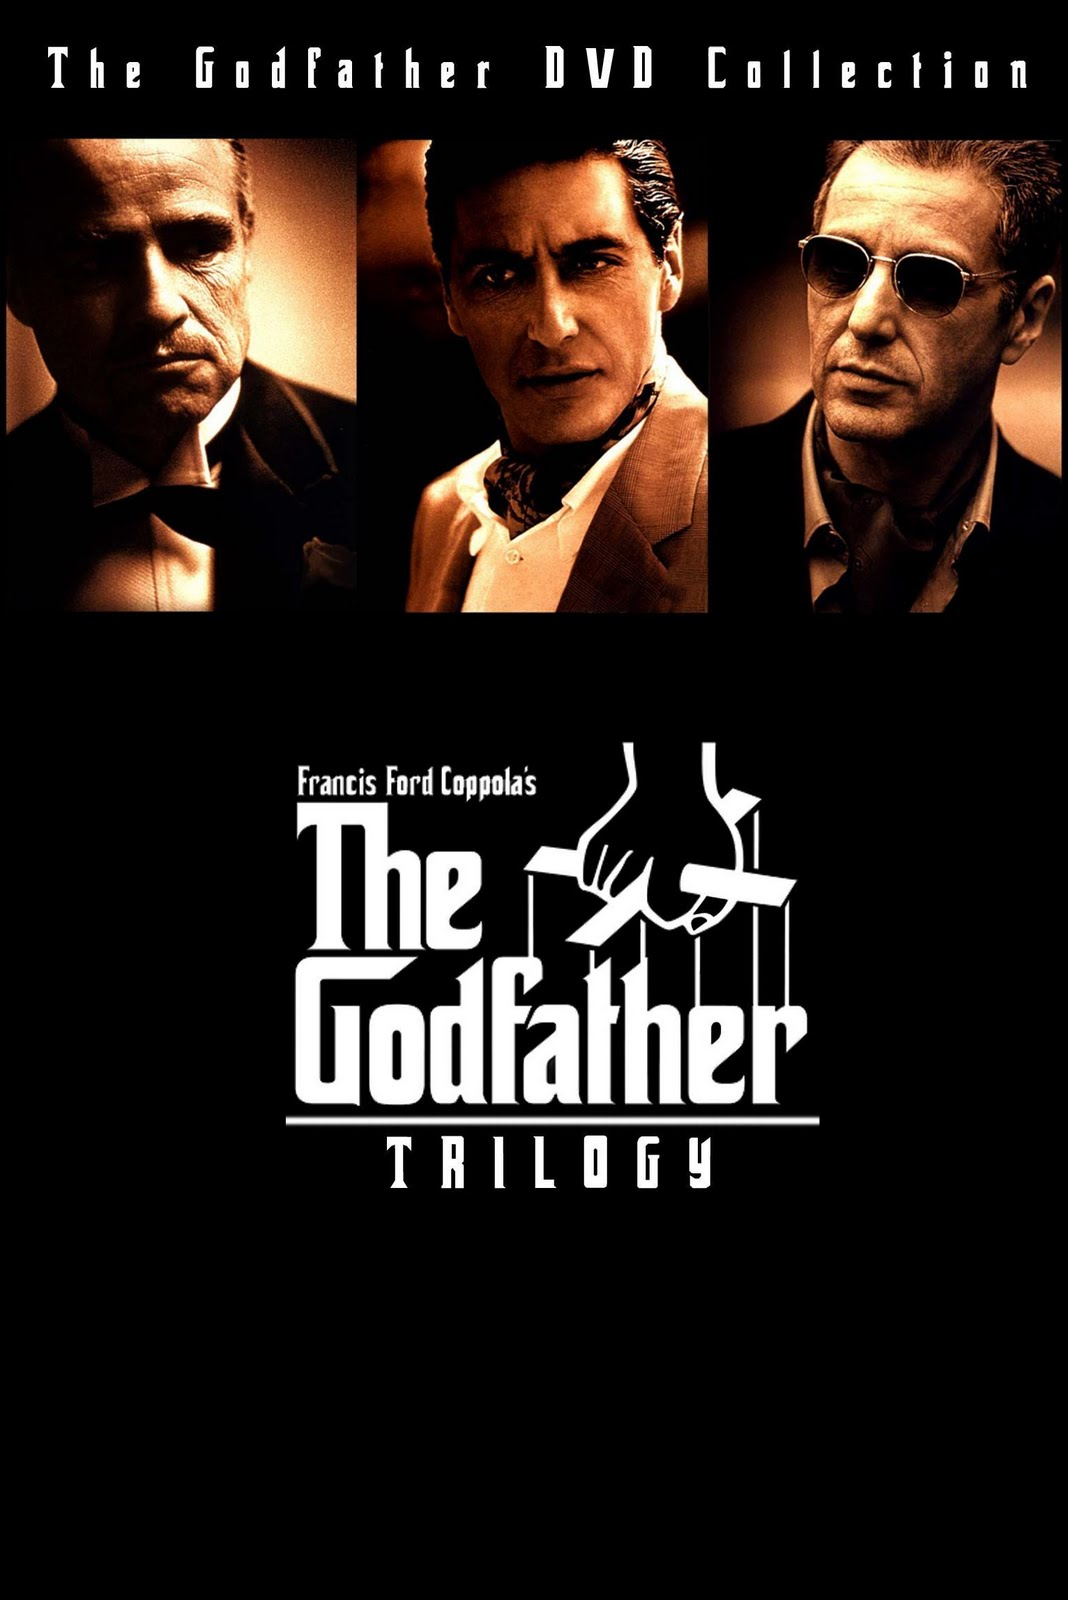 the film godfather 1 and 2 Closing credits state that this film is based on the novel the godfather by mario puzo in fact, only the scenes showing the young vito have any basis in the novel everything dealing with michael corleone and his family in las vegas was created for the film, with the exception of the character deanna dunn.